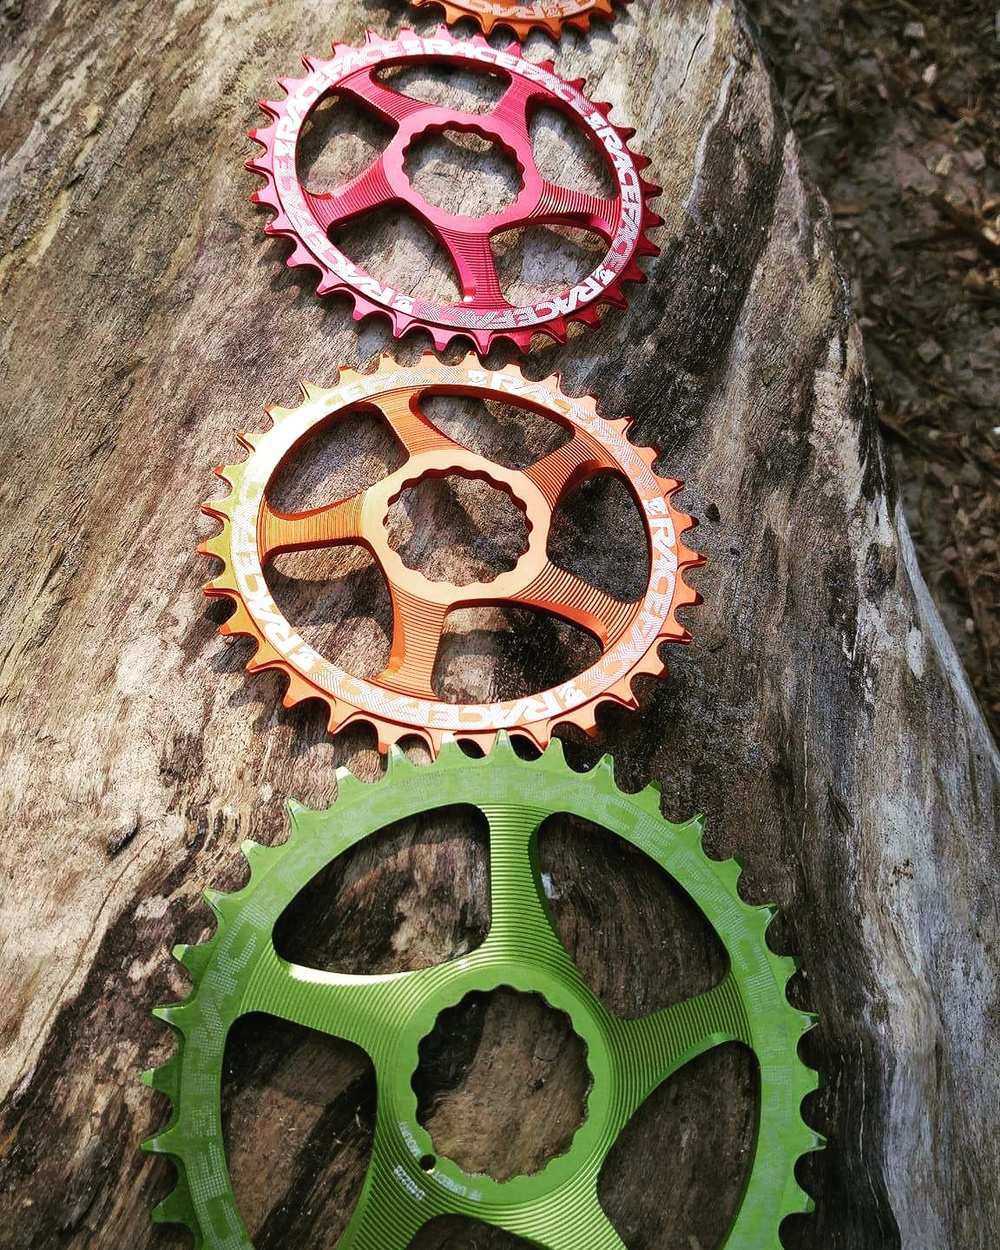 RACEFACE  DM NW chainrings